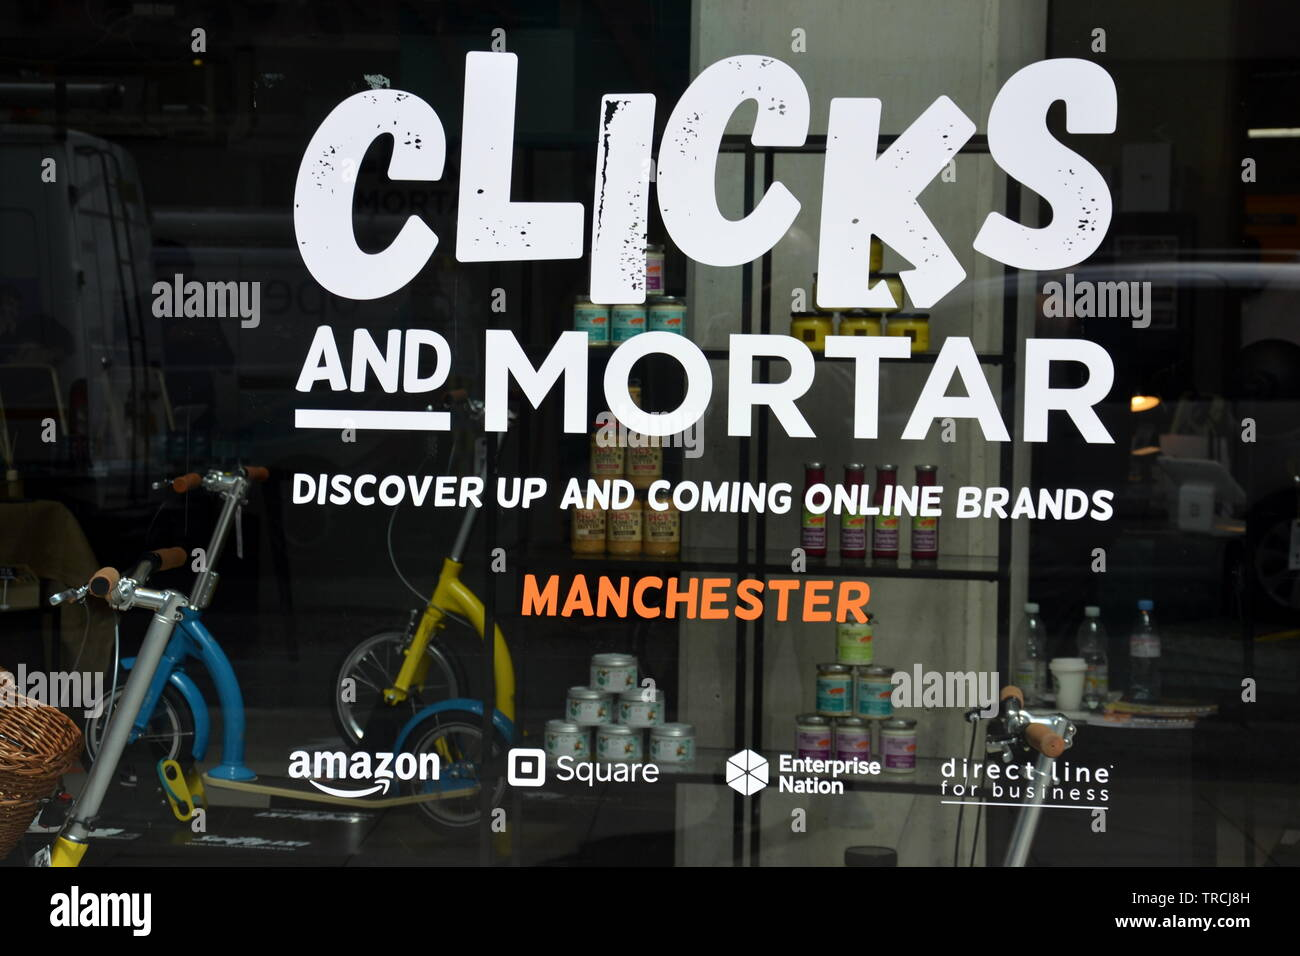 June 3rd, 2019.  Amazon and Enterprise Nation started a new initiative today to  help small businesses sell on the high street.  They plan to open ten 'Clicks and Mortar' shops in the uk as a one year pilot project.  The first shop opened today on St Mary's Gate in city centre Manchester. The shops aim to help selected online brands grow their high street presence. The shop window of the new shop in Manchester, uk. - Stock Image